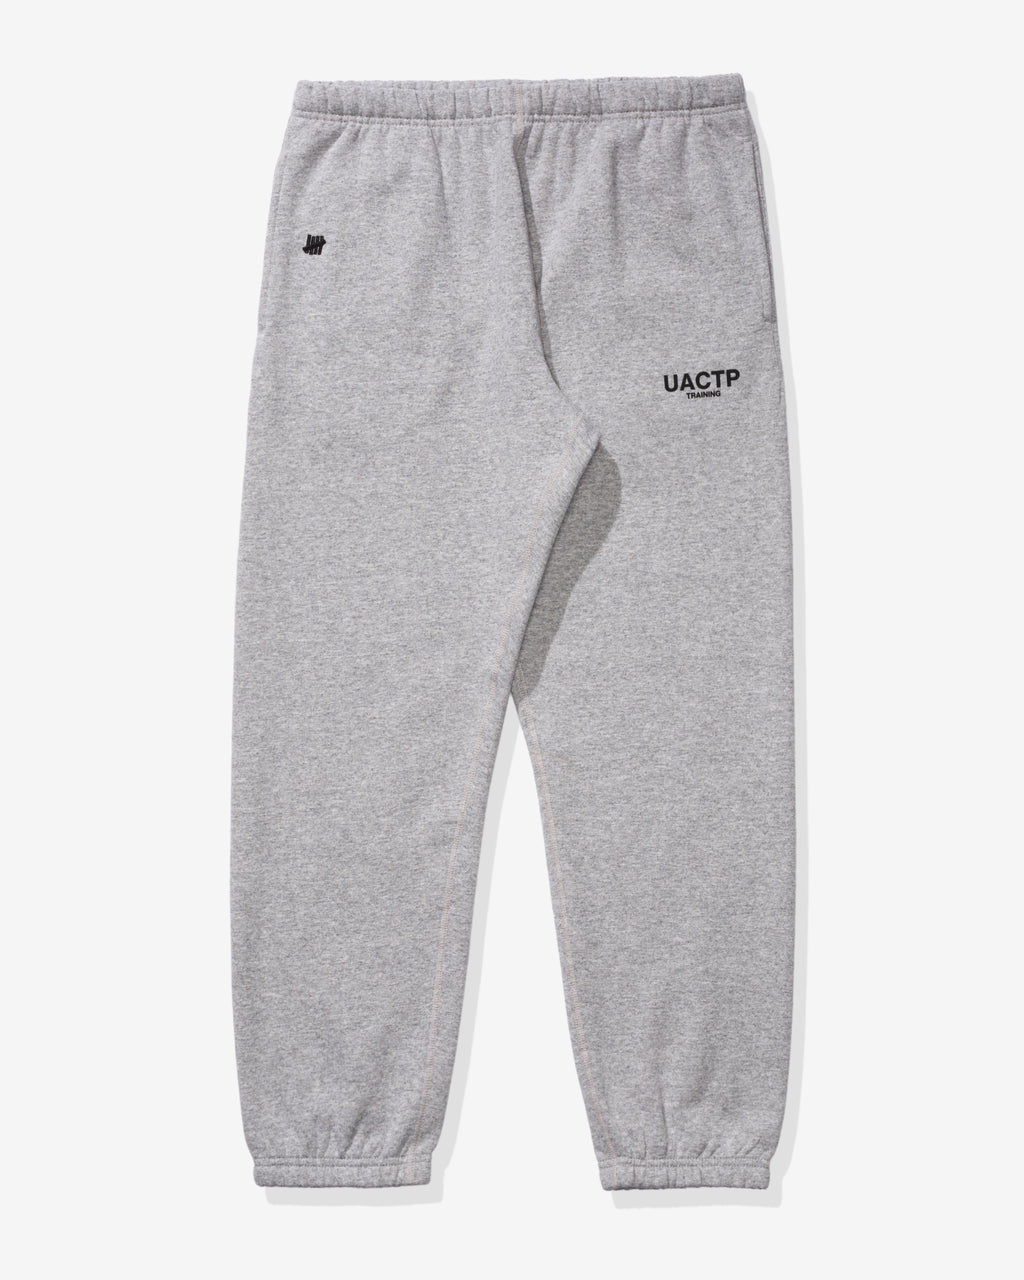 UACTP TRAINING SWEATPANT - HEATHER GREY